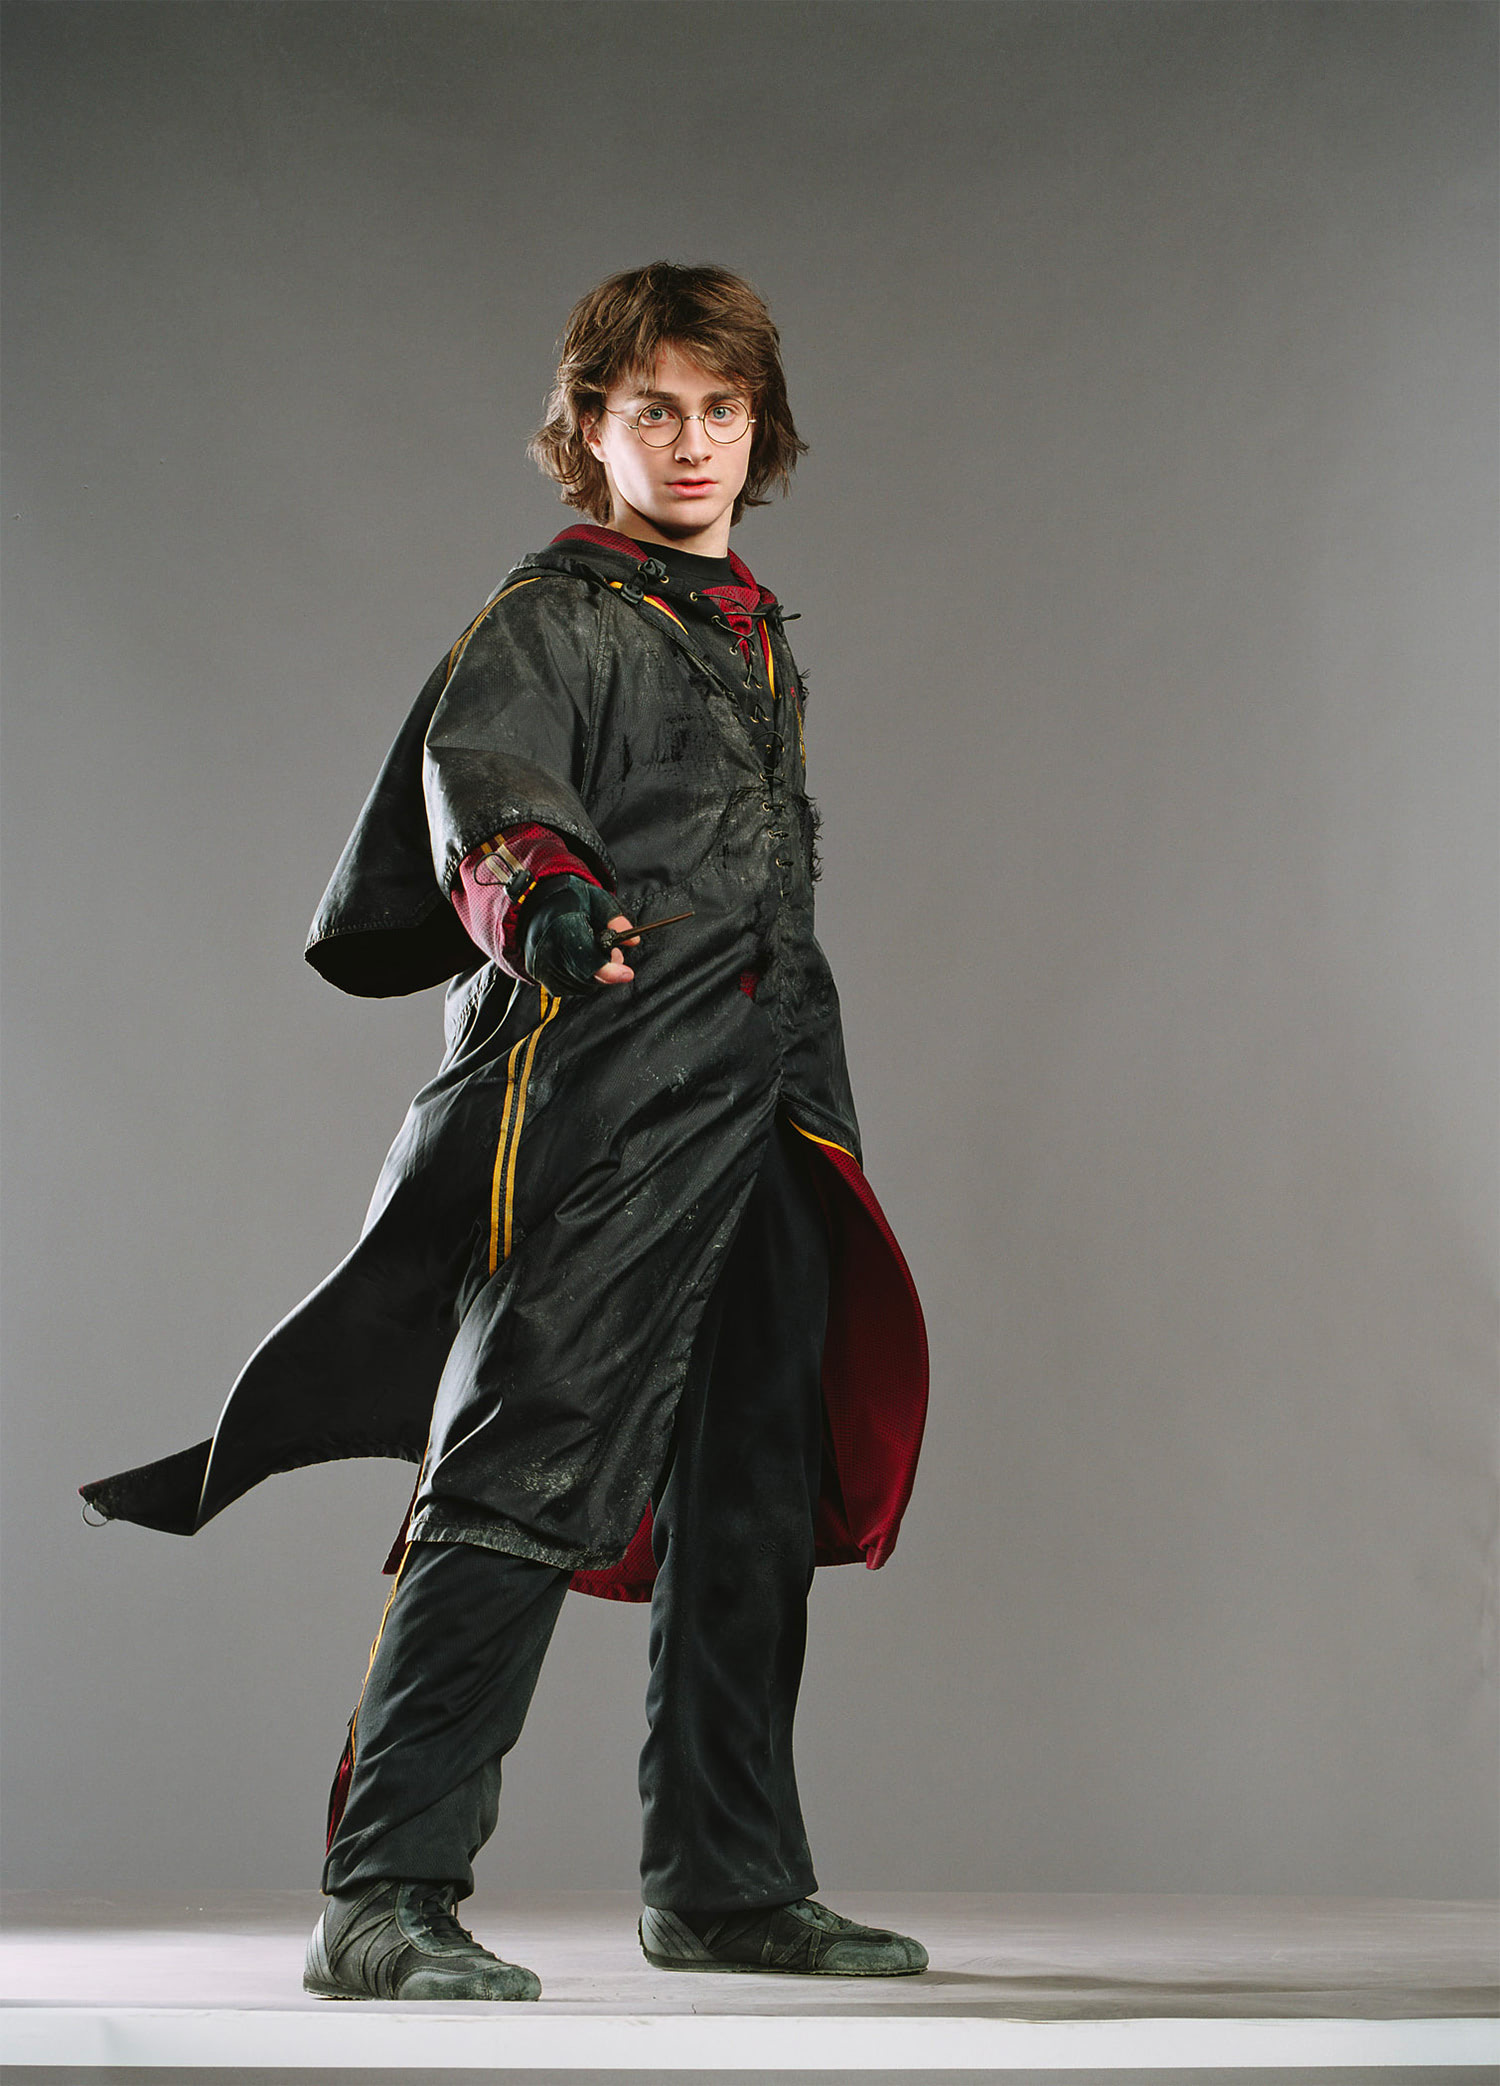 Portrait of Harry in his First Task outfit